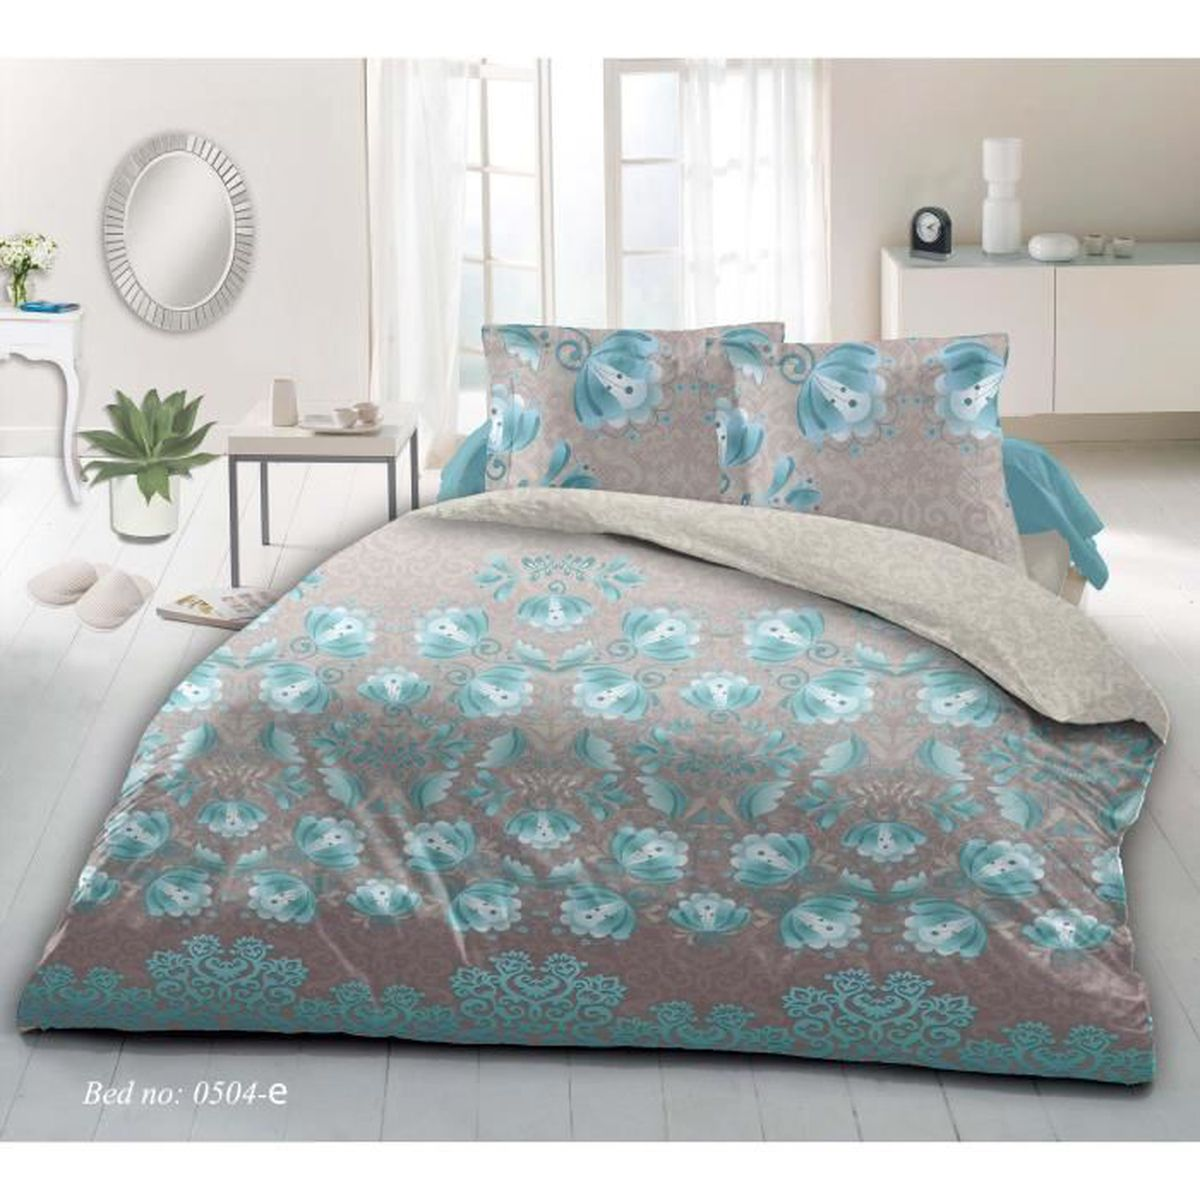 Housse couette turquoise 17 best images about douillette for Housse de couette turquoise